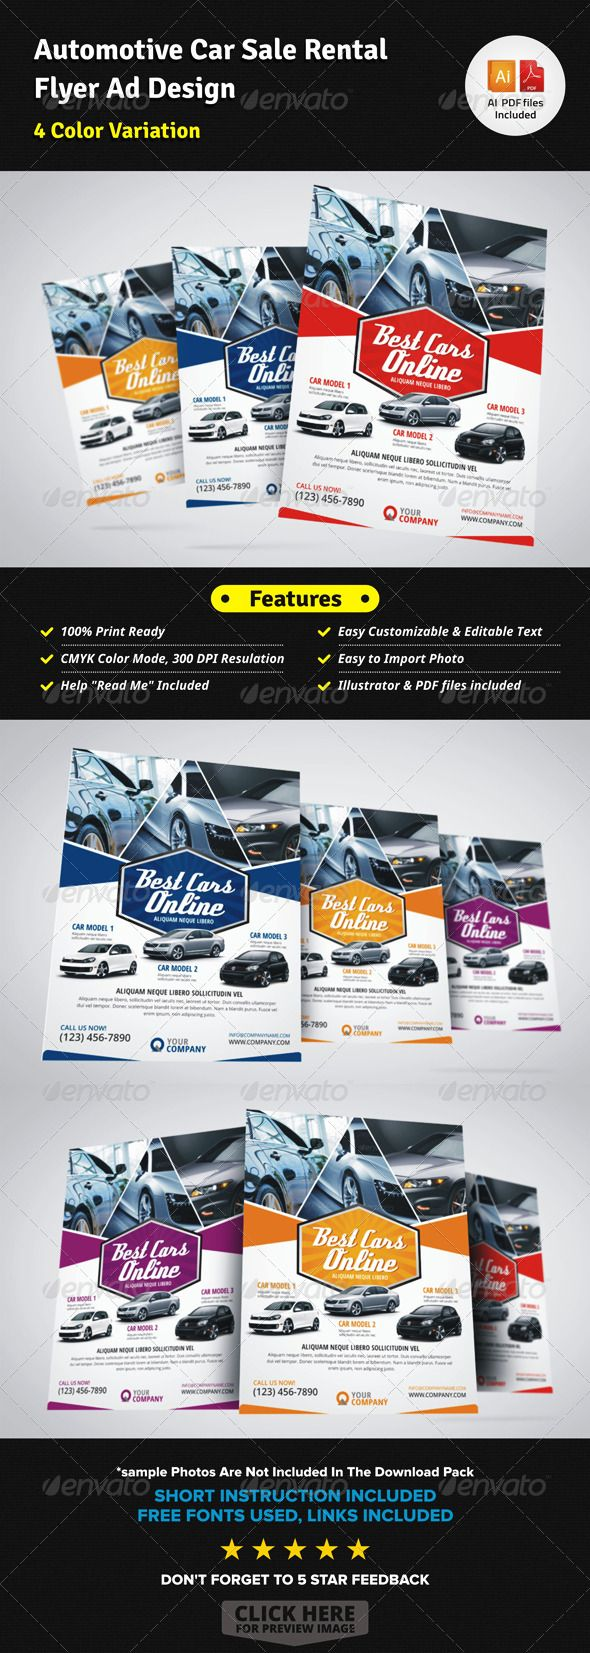 12 best Auto Graphic Design images on Pinterest | Flyer template ...